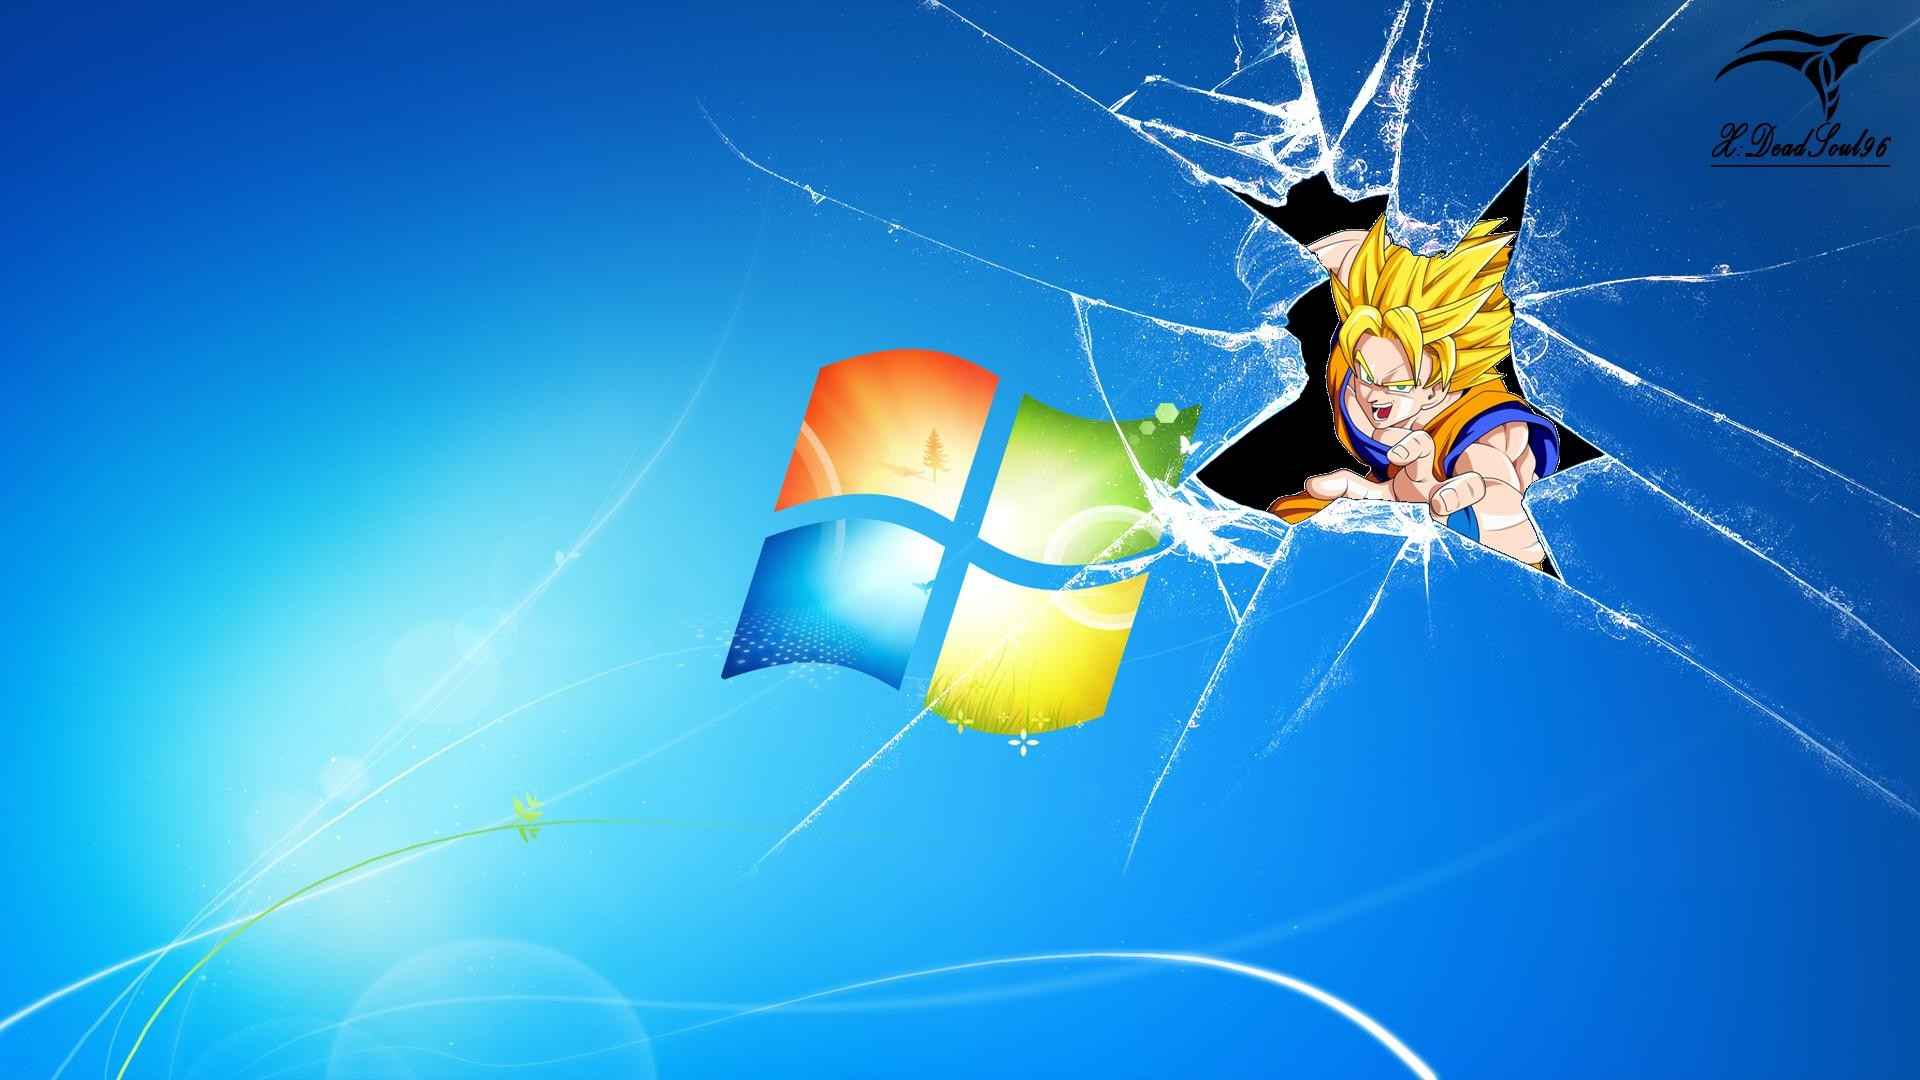 Dbz background download free stunning backgrounds for - Dragon ball z live wallpaper iphone ...